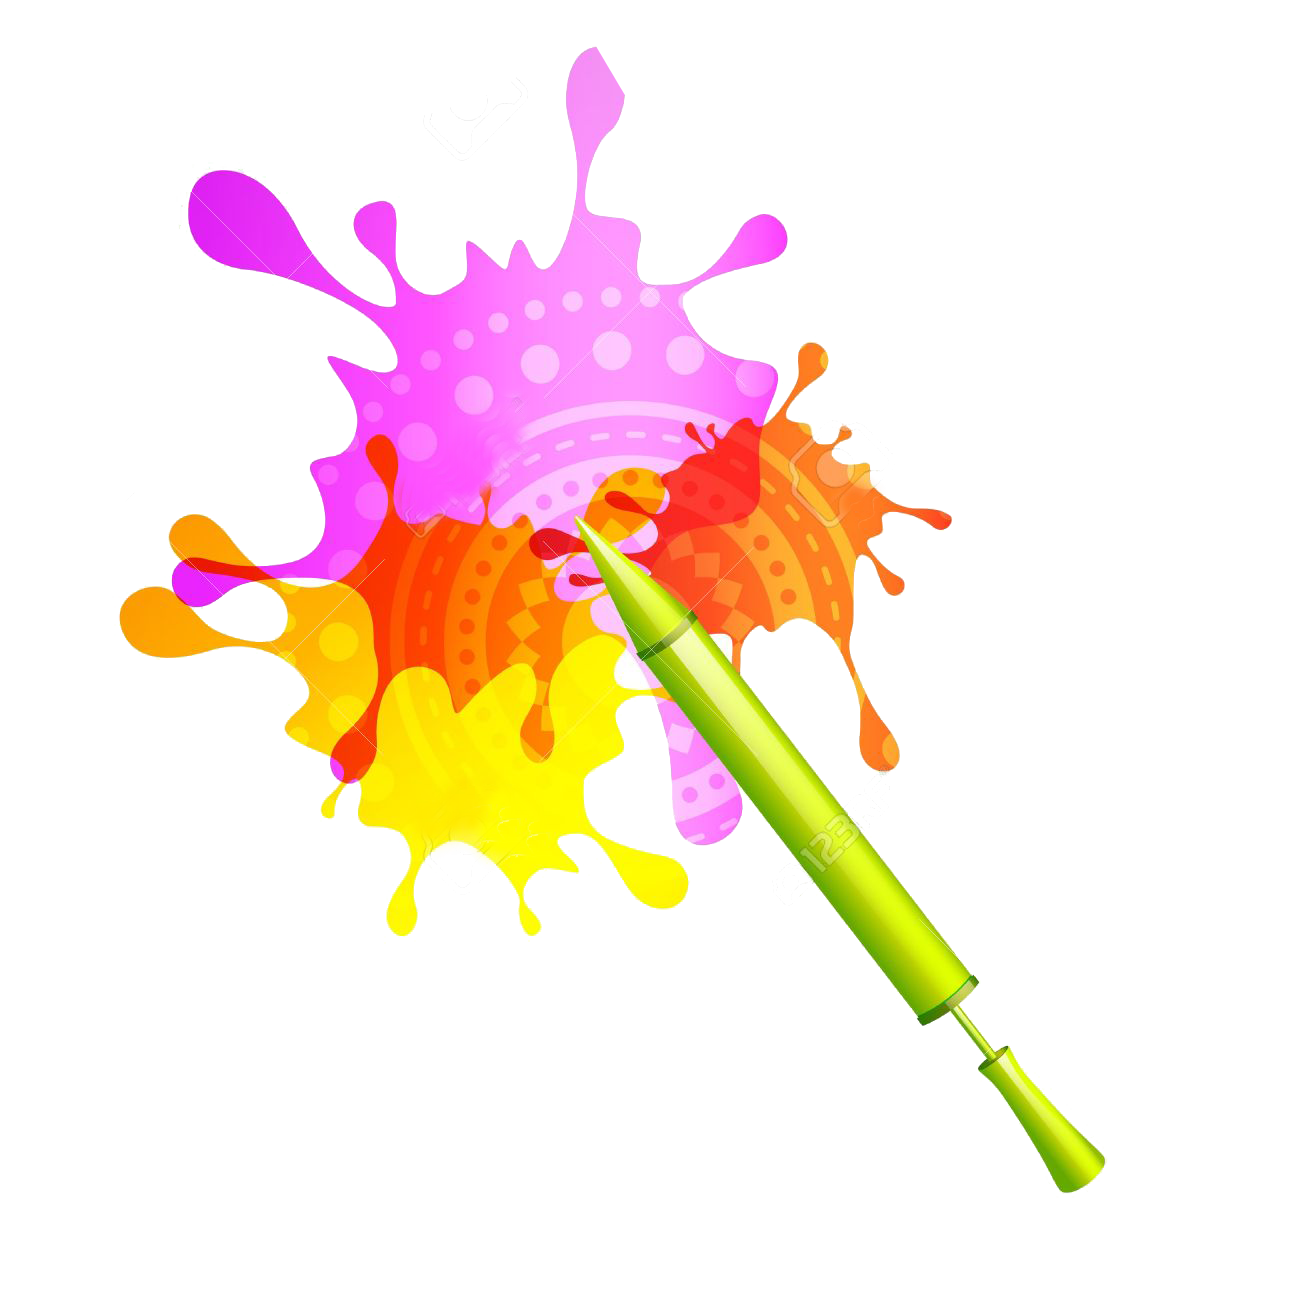 2018 colorful clipart transparent image free library Transparent Clipart Image holi pichkari with colorful splash - Free ... image free library